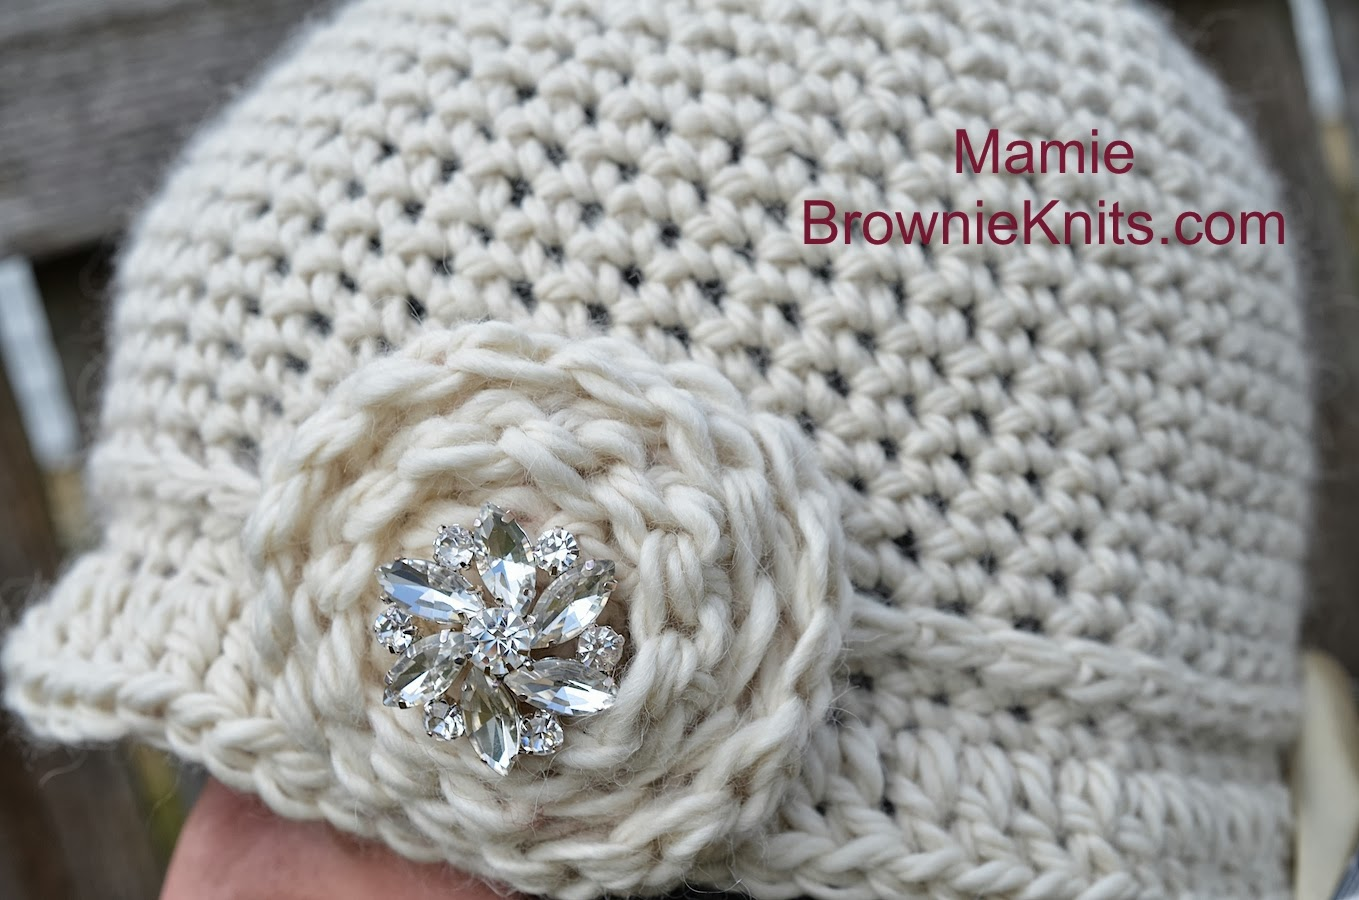 Brownie knits brownie knits wednesday mamiea new crochet hat the mamie hat and name was inspired by my great great aunt mamie i only met her one time when we traveled to alabama when i was about six bankloansurffo Images